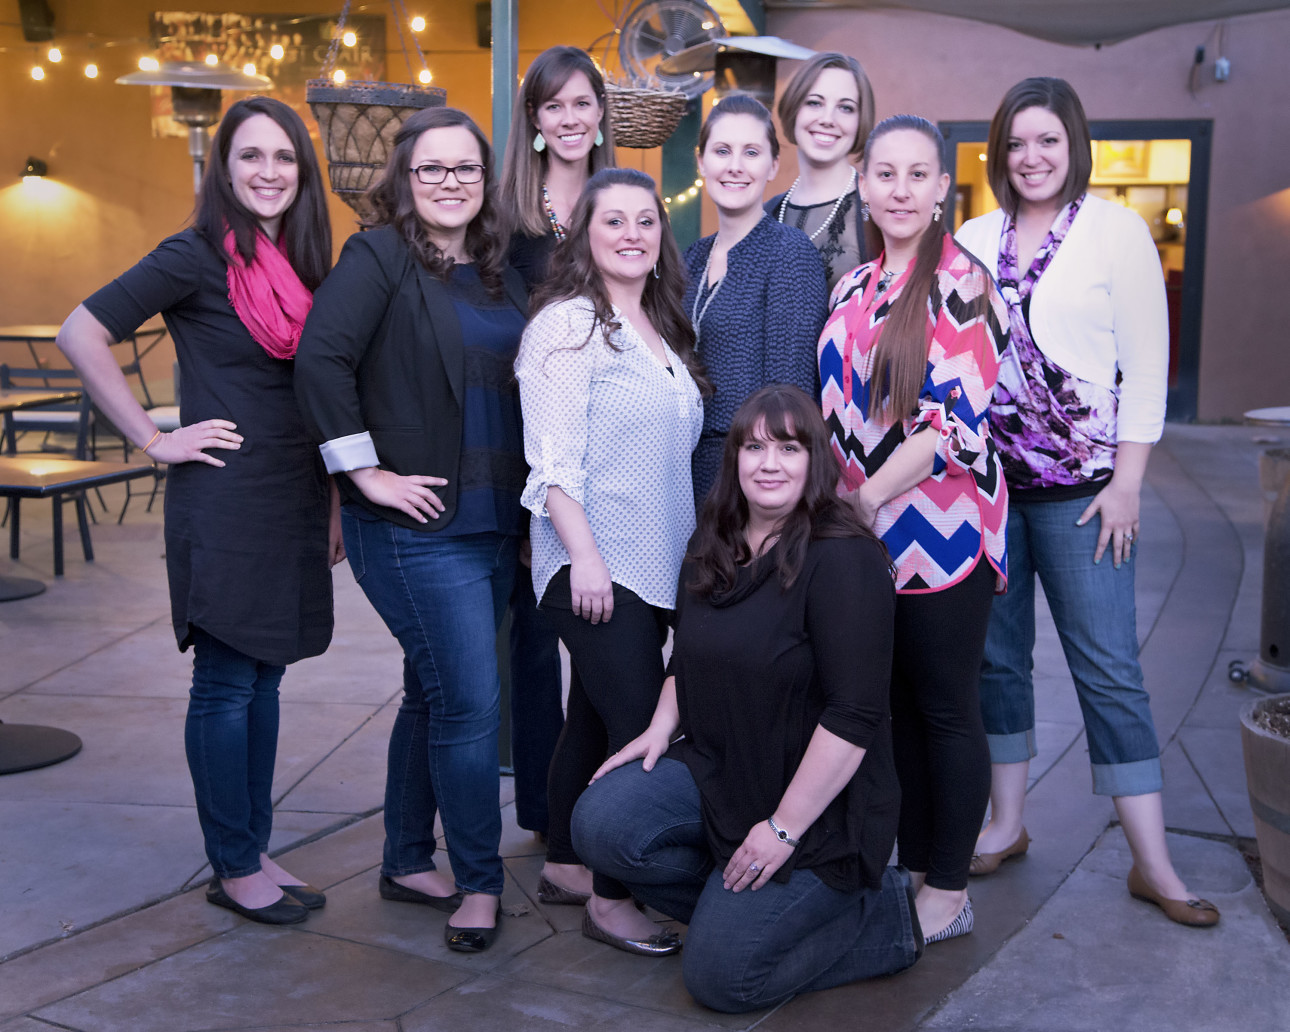 St. Clairs Albuquerque Moms Blog Party